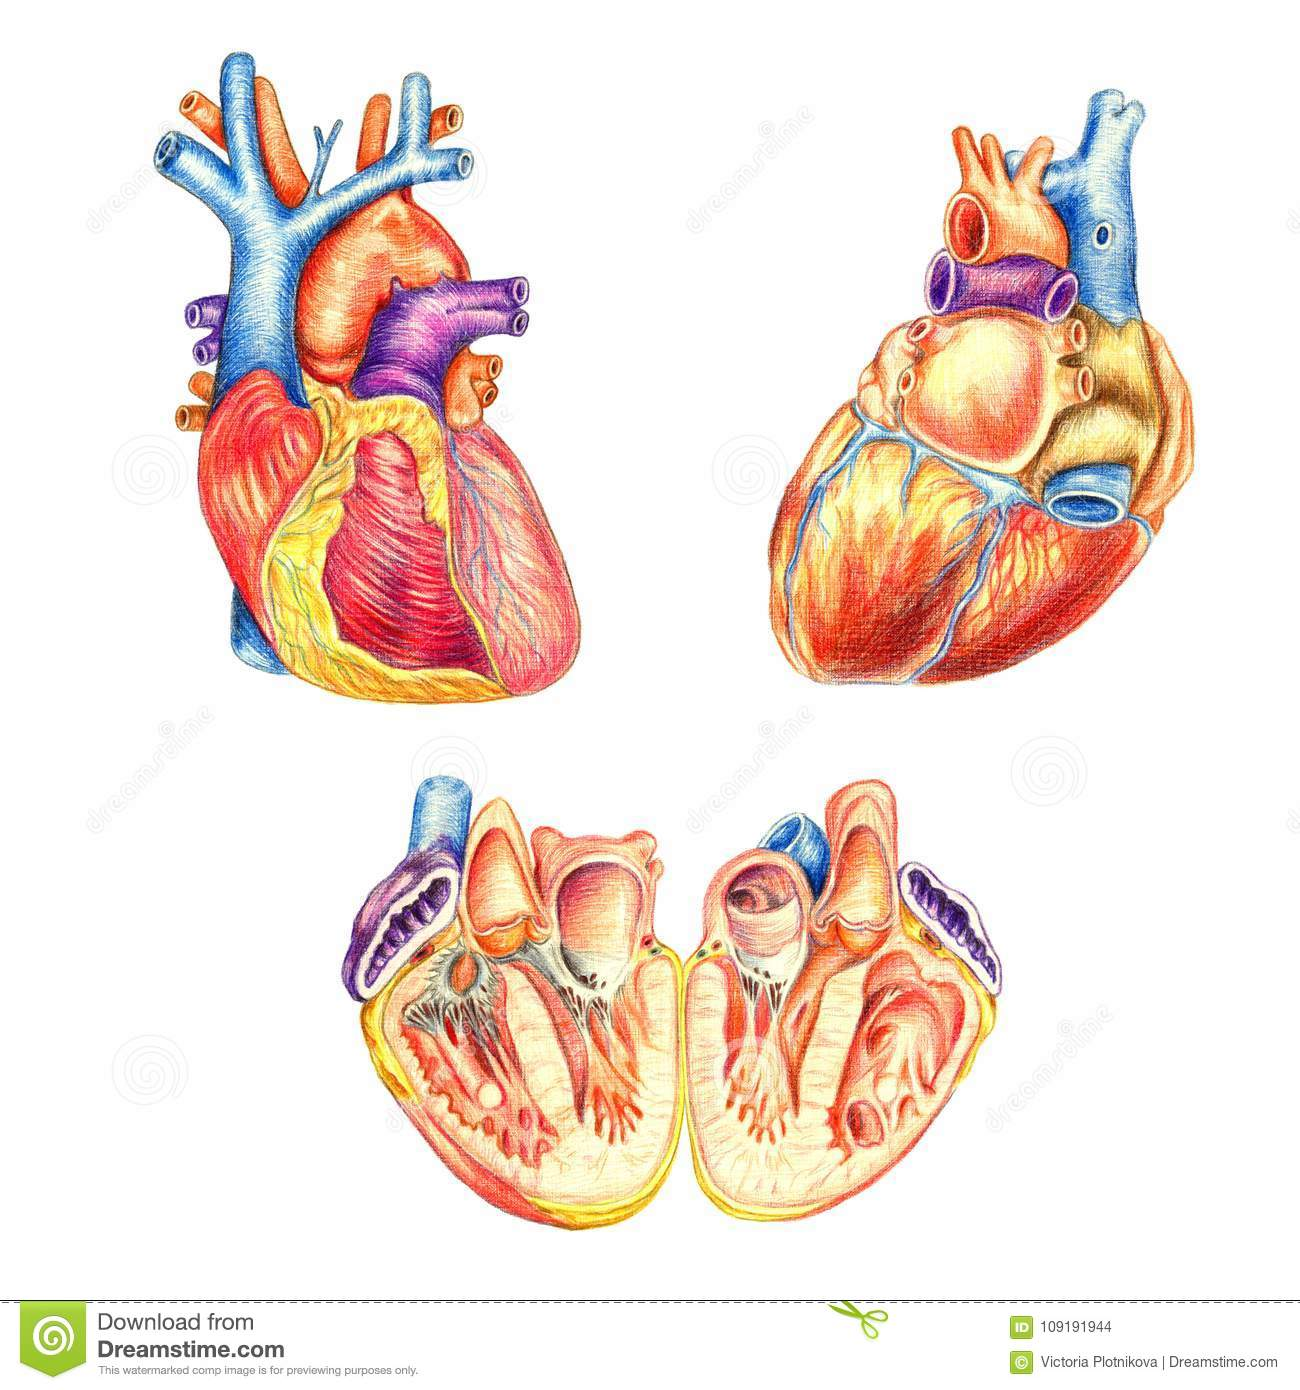 The Human Heart Viewed From The Front Behind And Lengthwise Cut